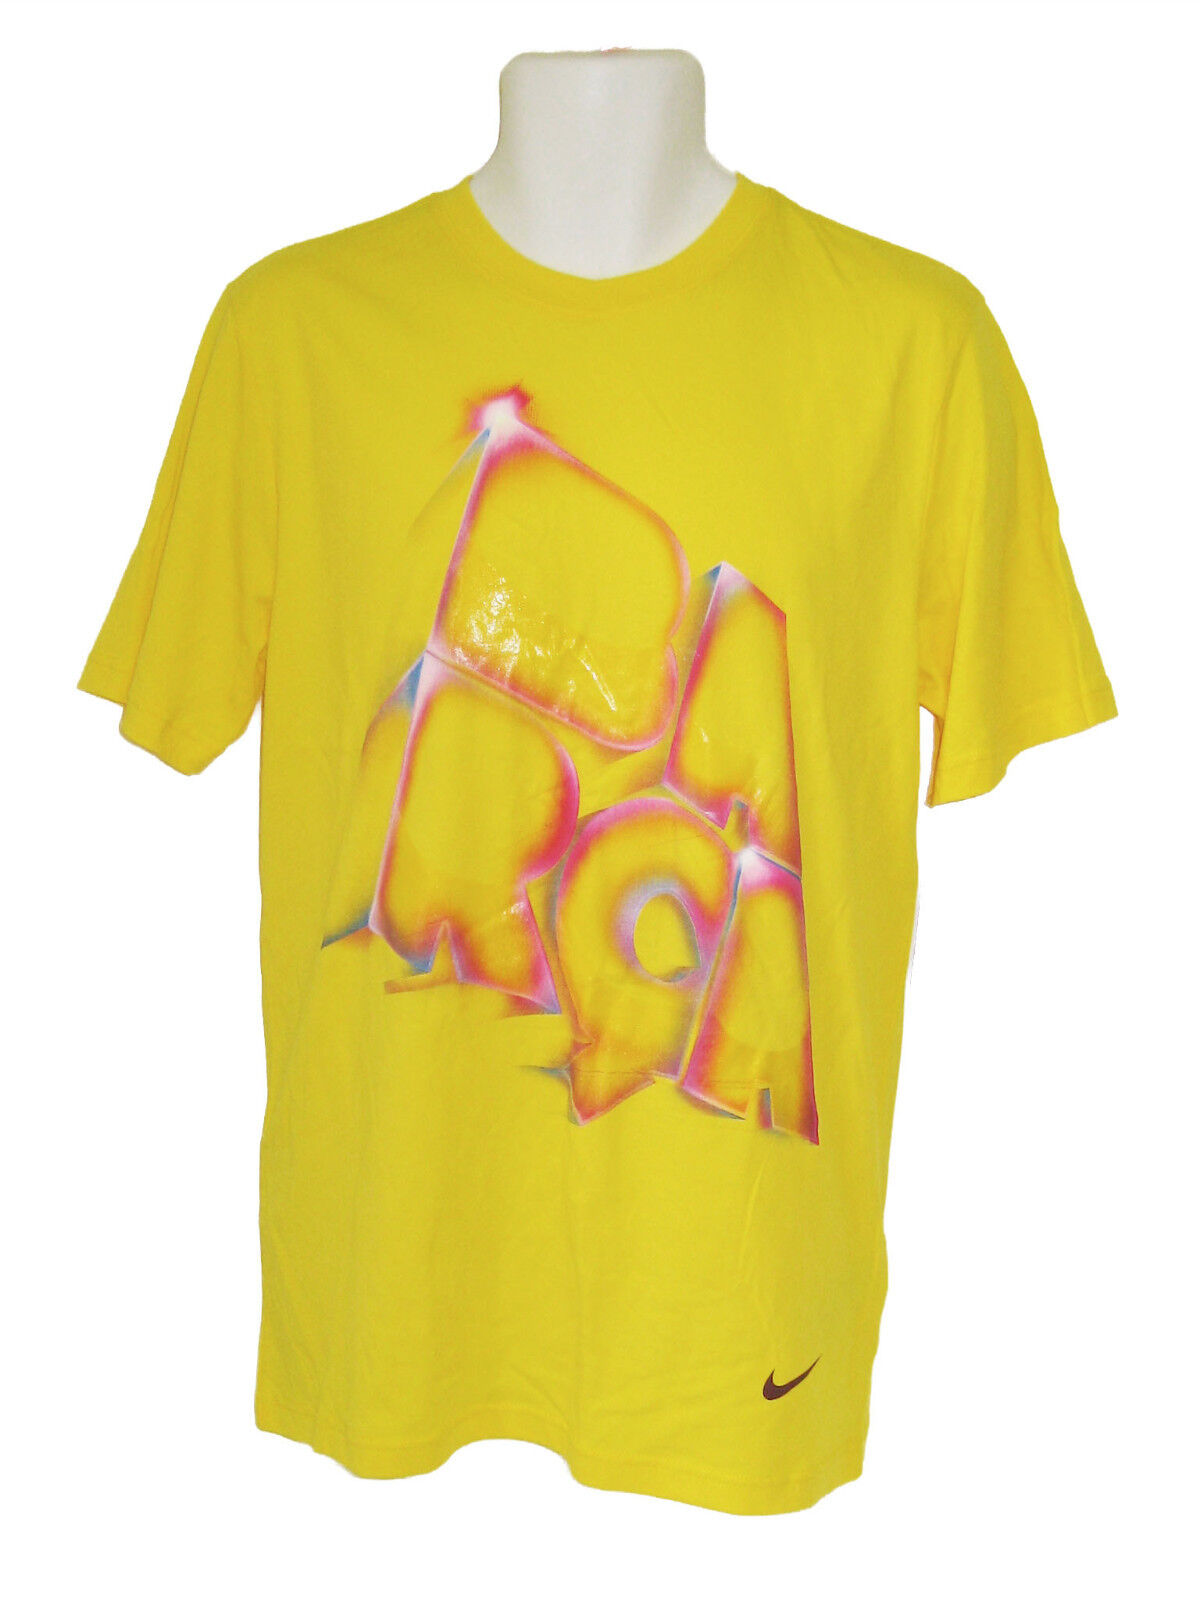 New NIKE BARCELONA FC Football BARCA Cotton Tee Shirts Zest M